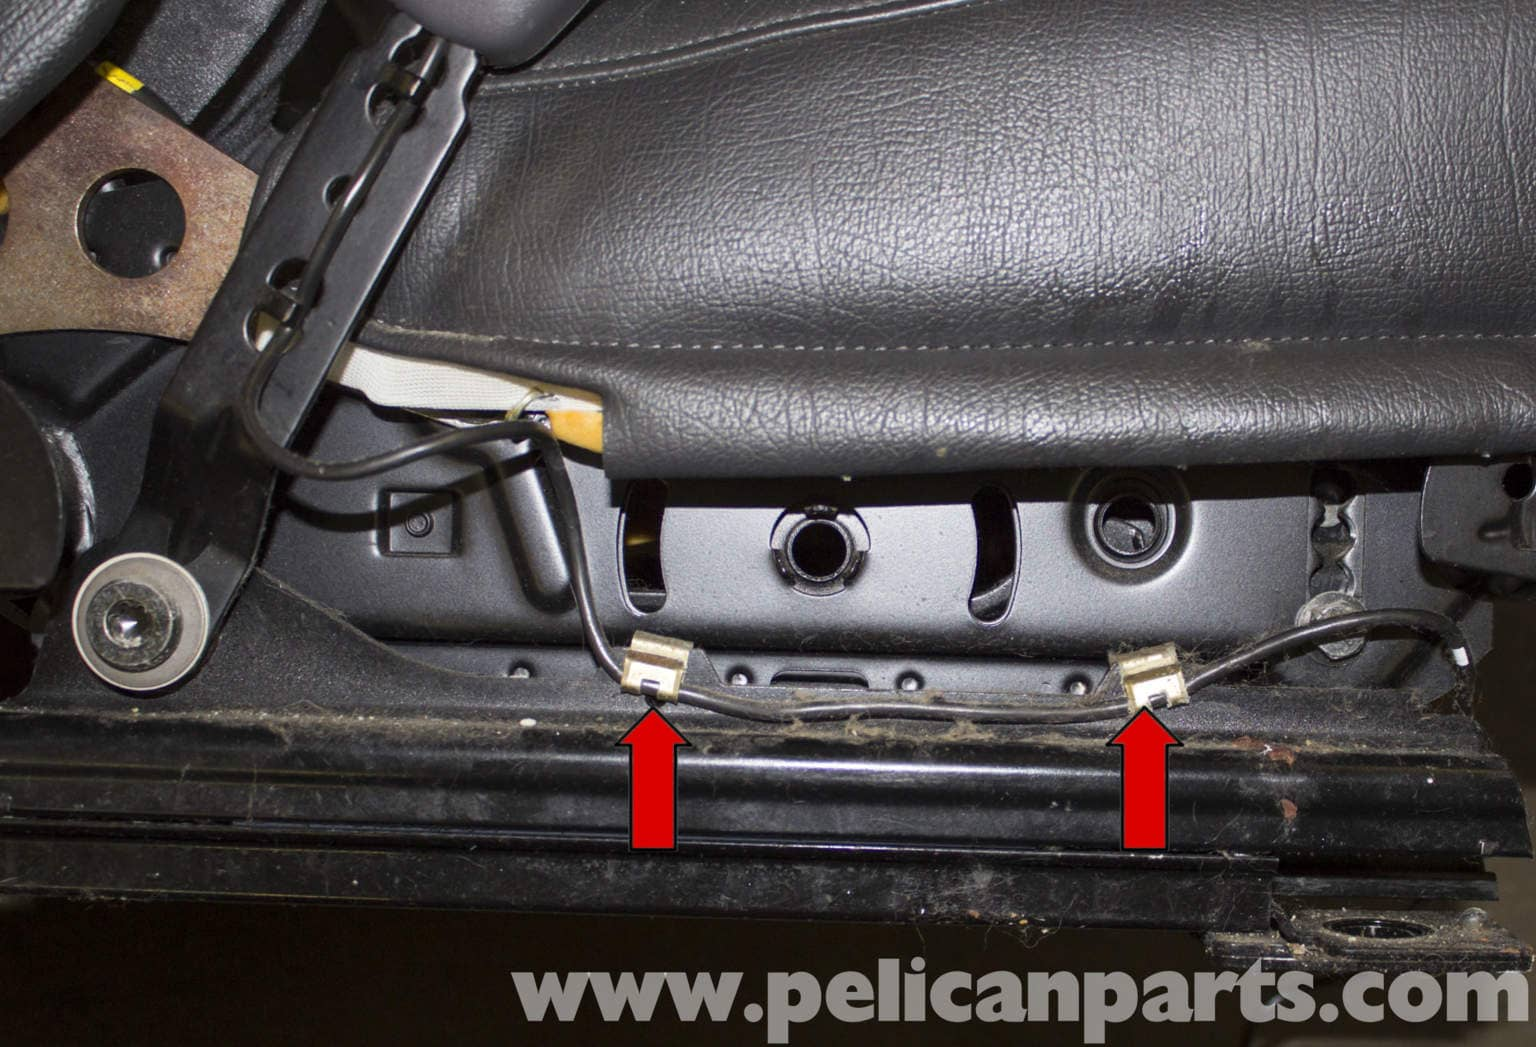 Volvo V70 Front Seat Belt Buckle Replacement (1998-2007) - Pelican Parts DIY Maintenance Article